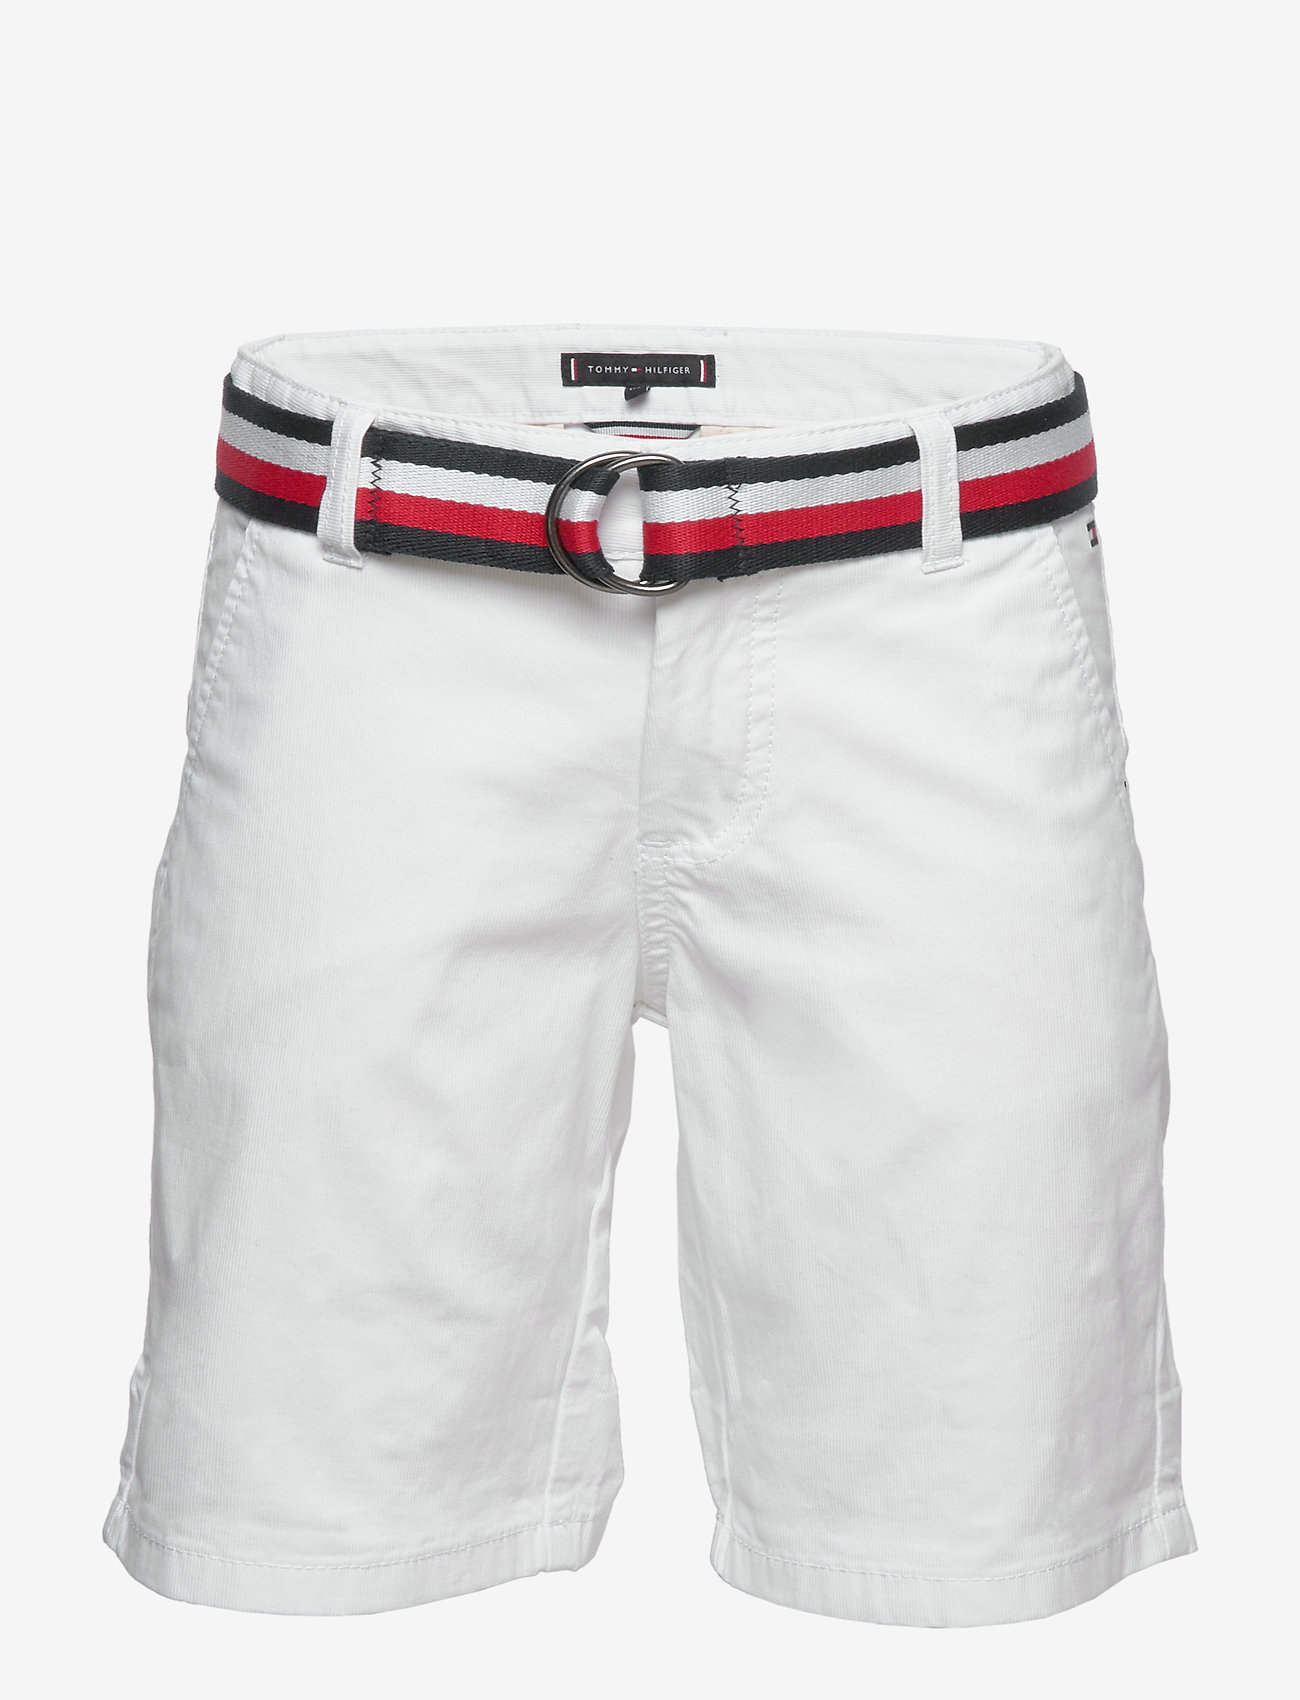 Tommy Hilfiger - ESSENTIAL BELTED CHI - shorts - white 658-170 - 0